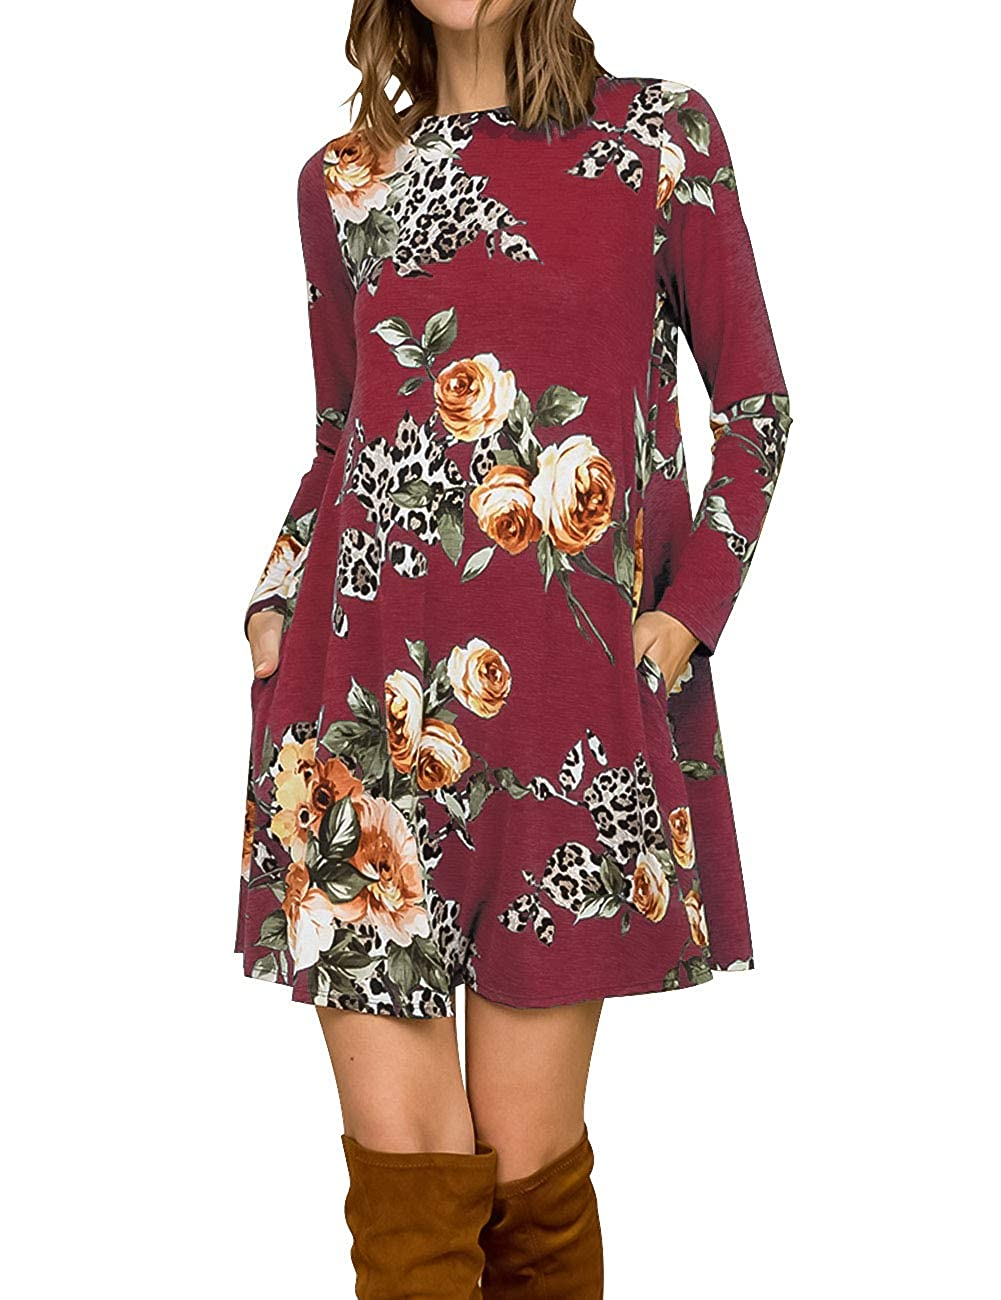 Dark Red MEROKEETY Women's Long Sleeve Floral Leopard Printed Swing Tunic Dress with Pockets